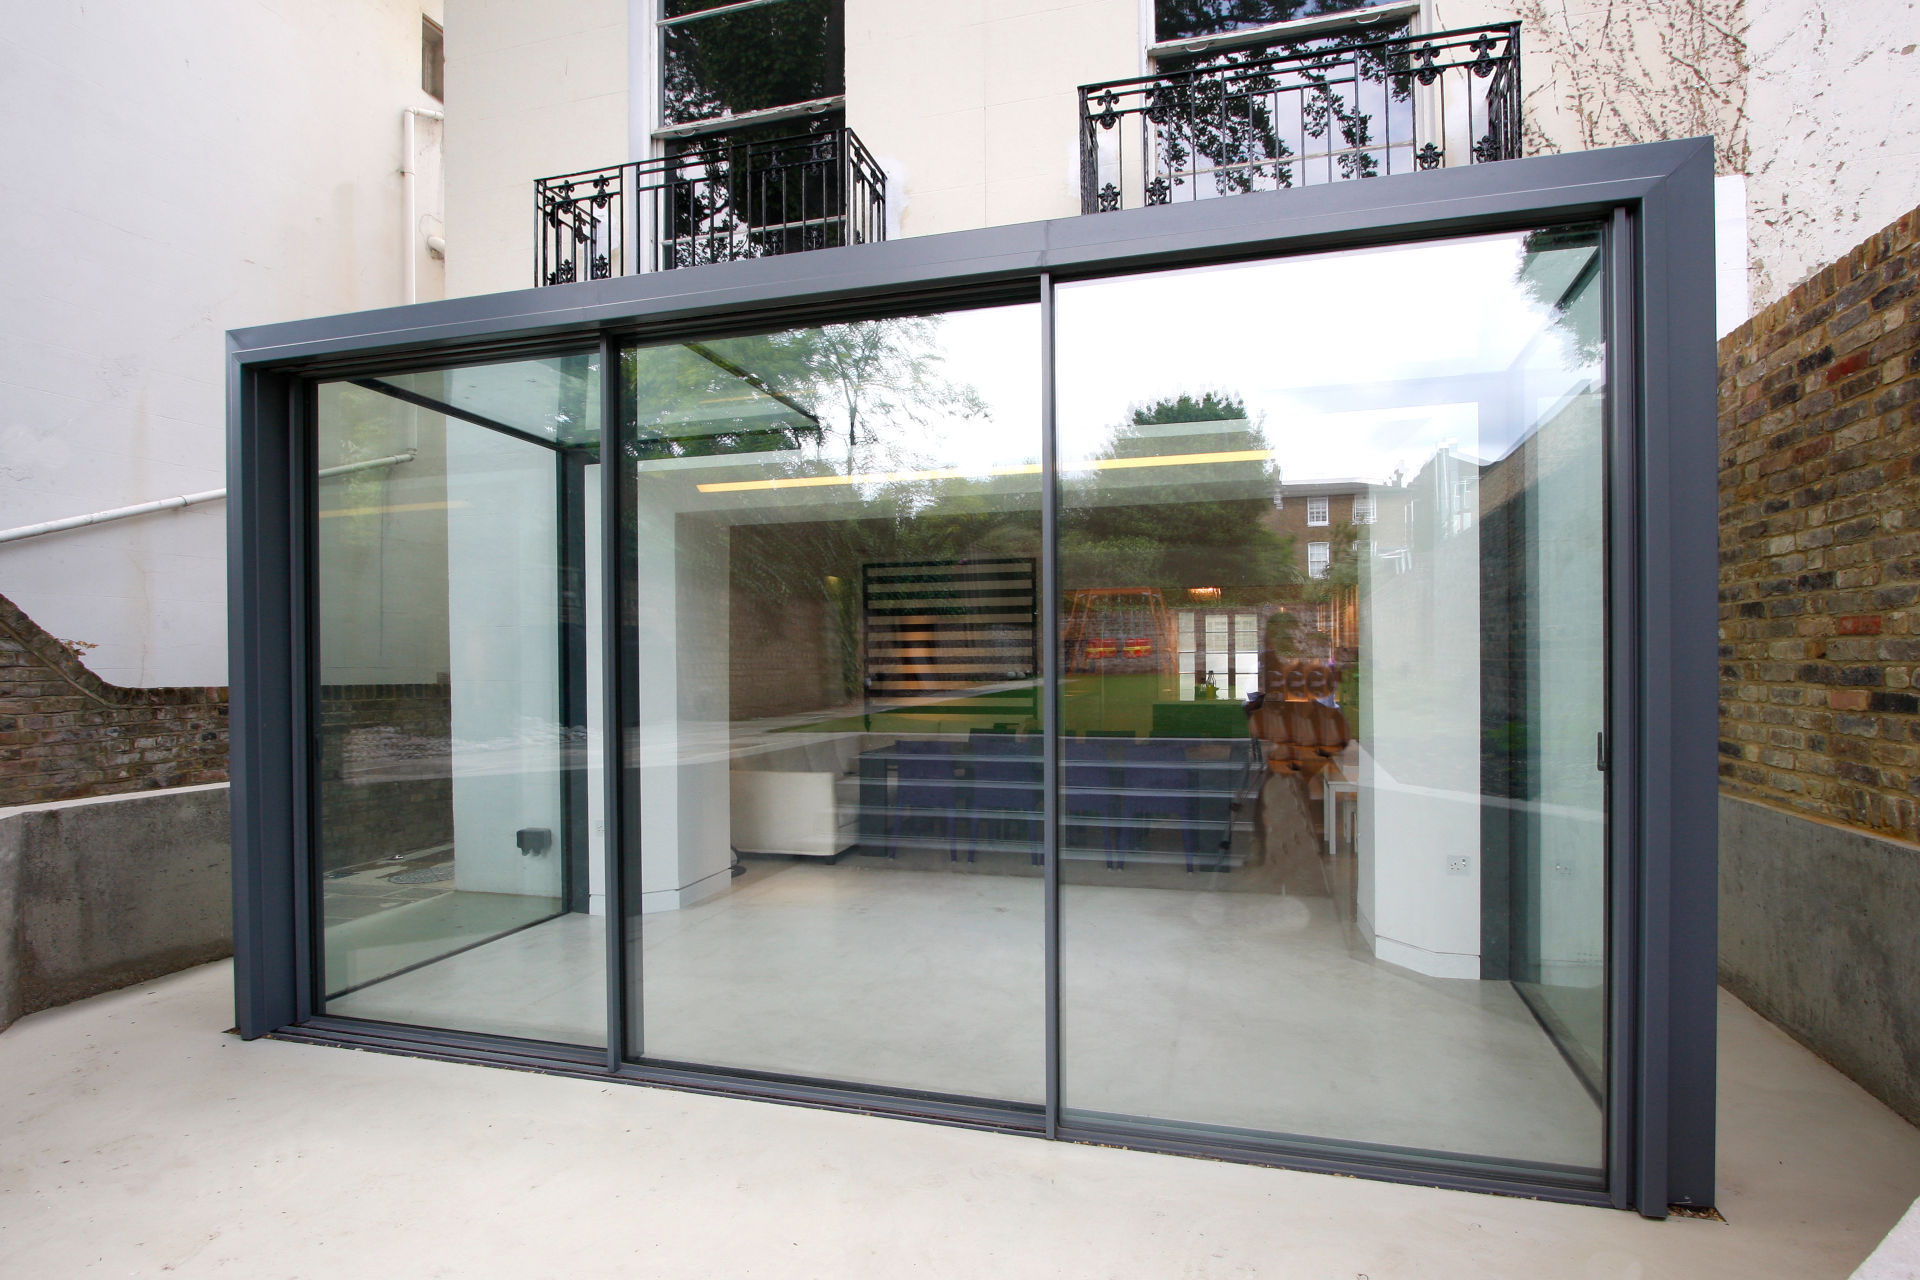 iq-glass-vitrendo-glass-extension-eton-villas (1)